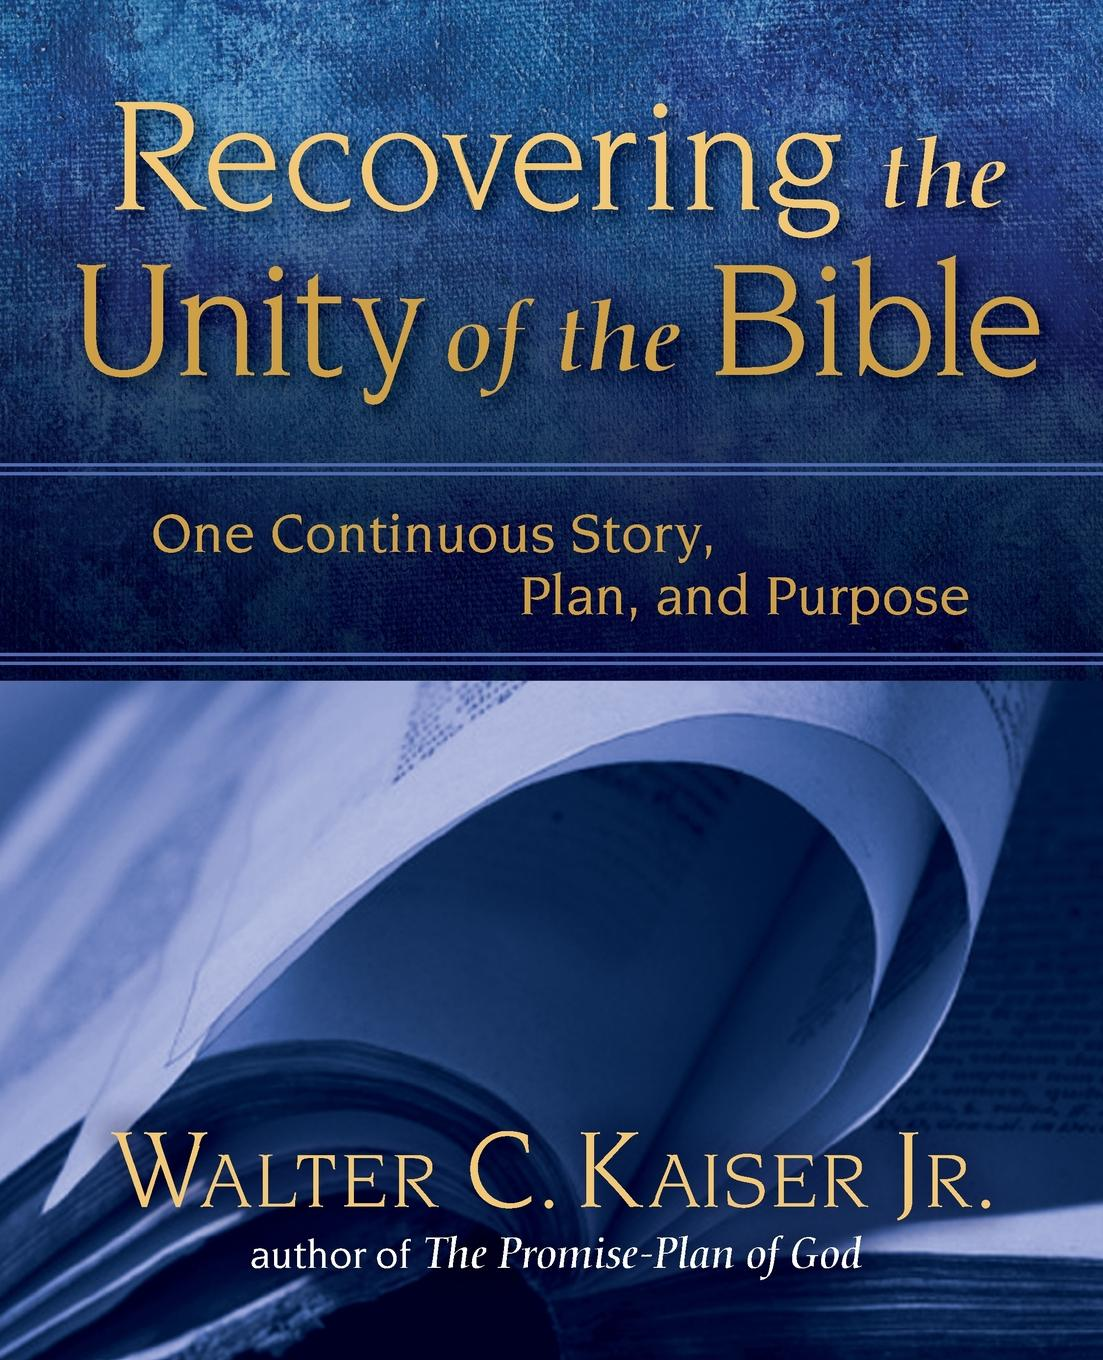 Walter Kaiser Jr. Recovering the Unity of the Bible. One Continuous Story, Plan, and Purpose adeney walter frederic the expositor s bible the song of solomon and the lamentations of jeremiah